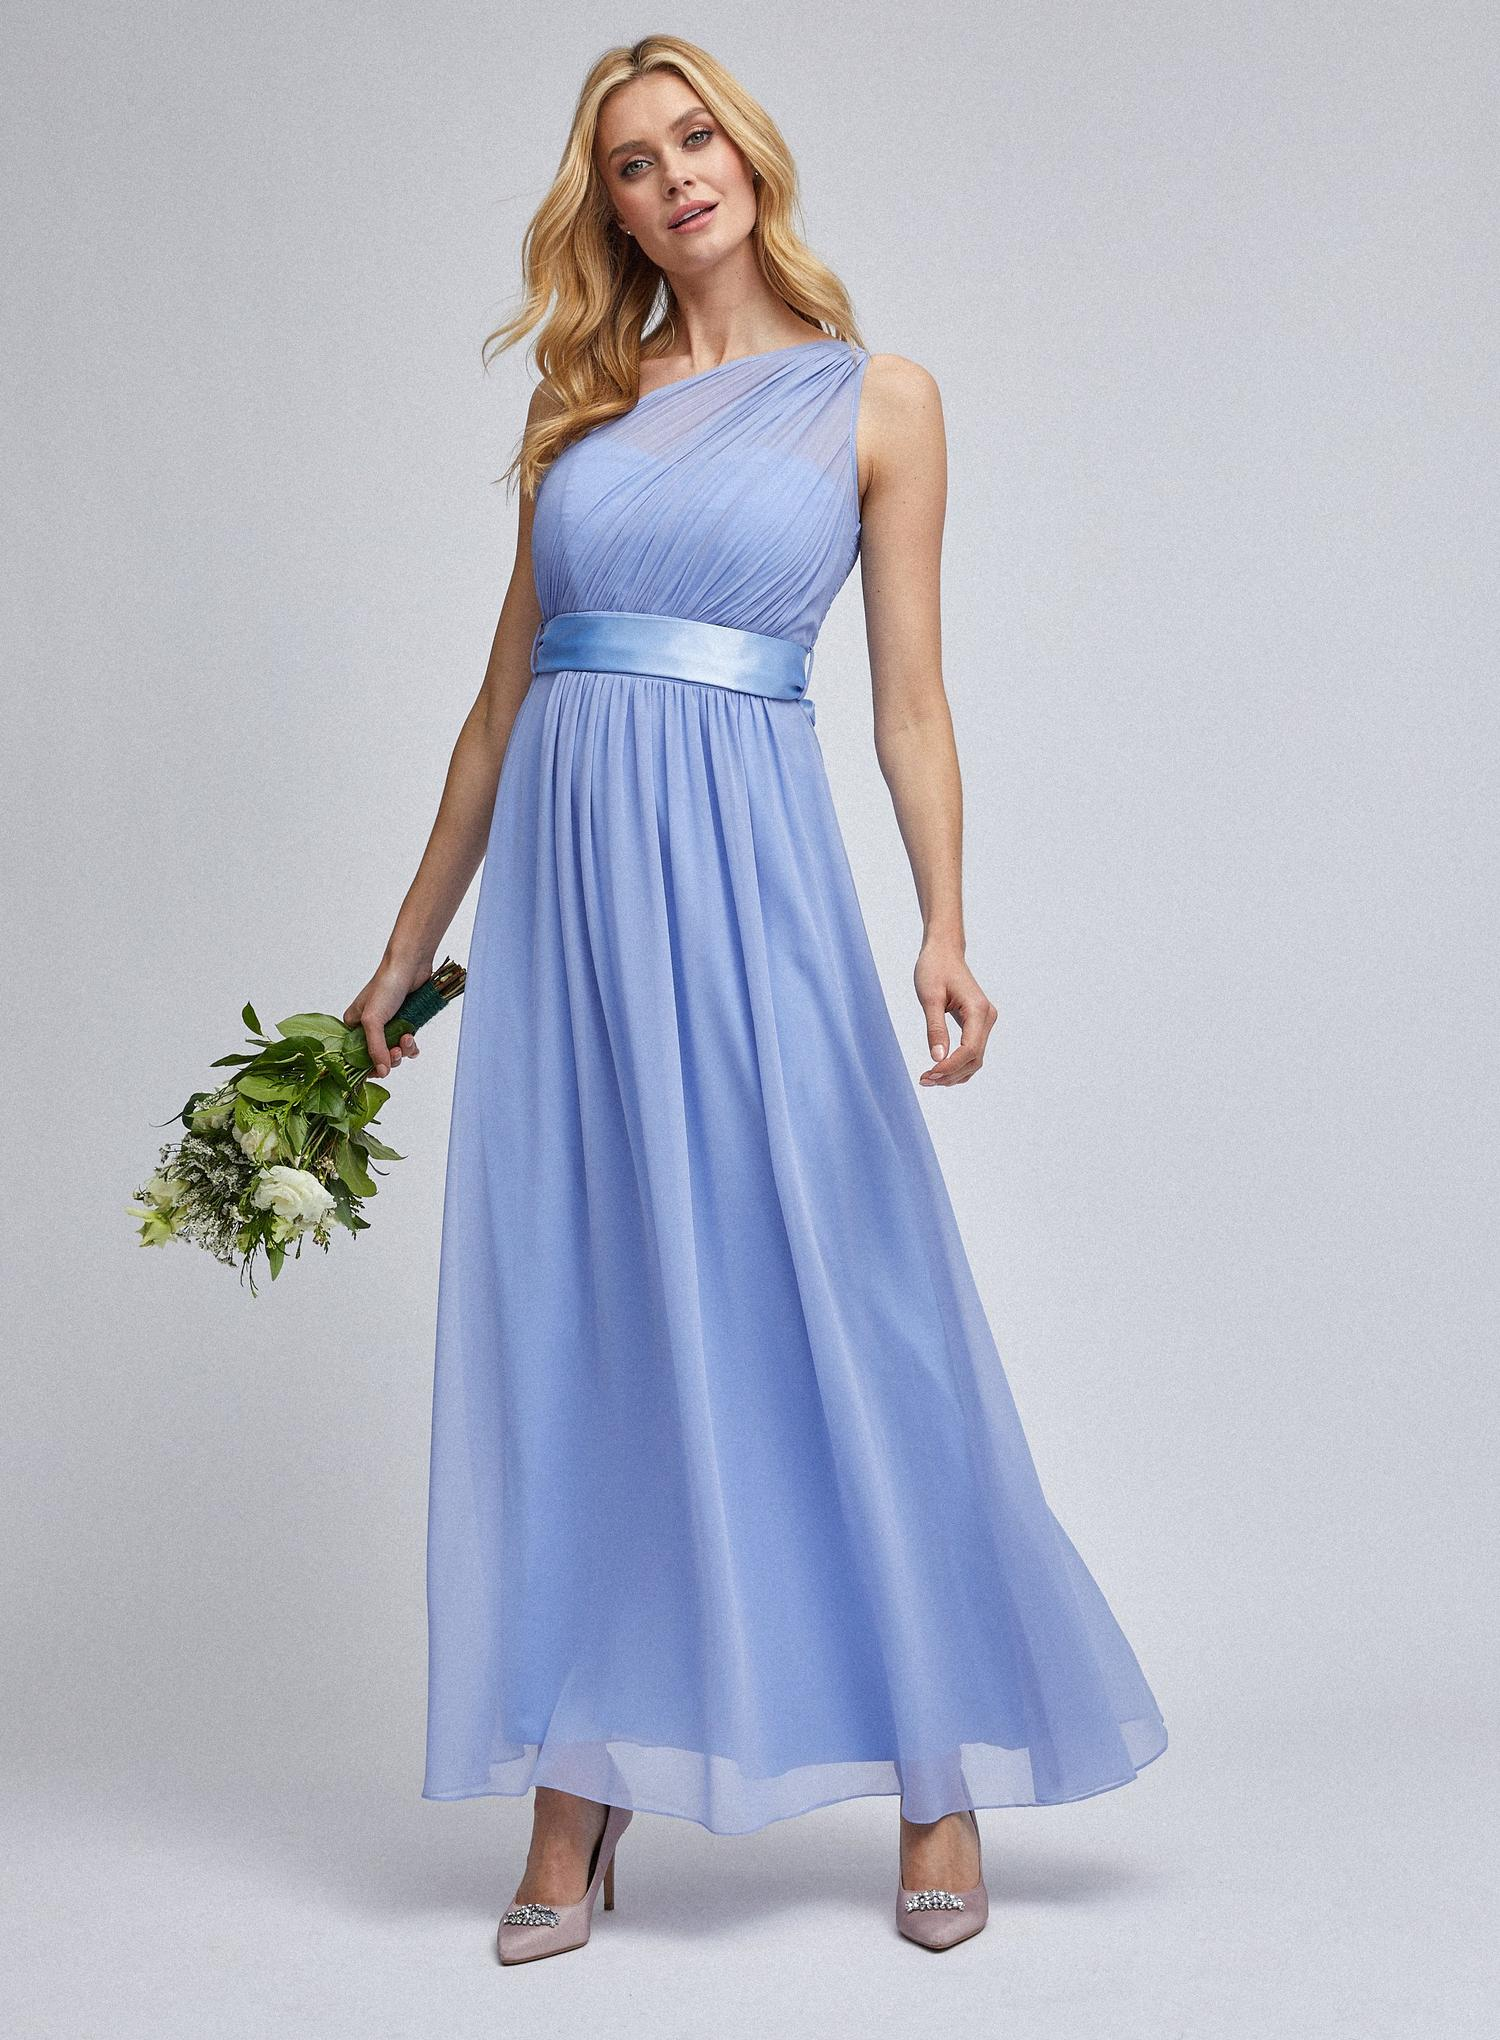 106 Sadie  Blue One Shoulder Maxi Dress image number 1